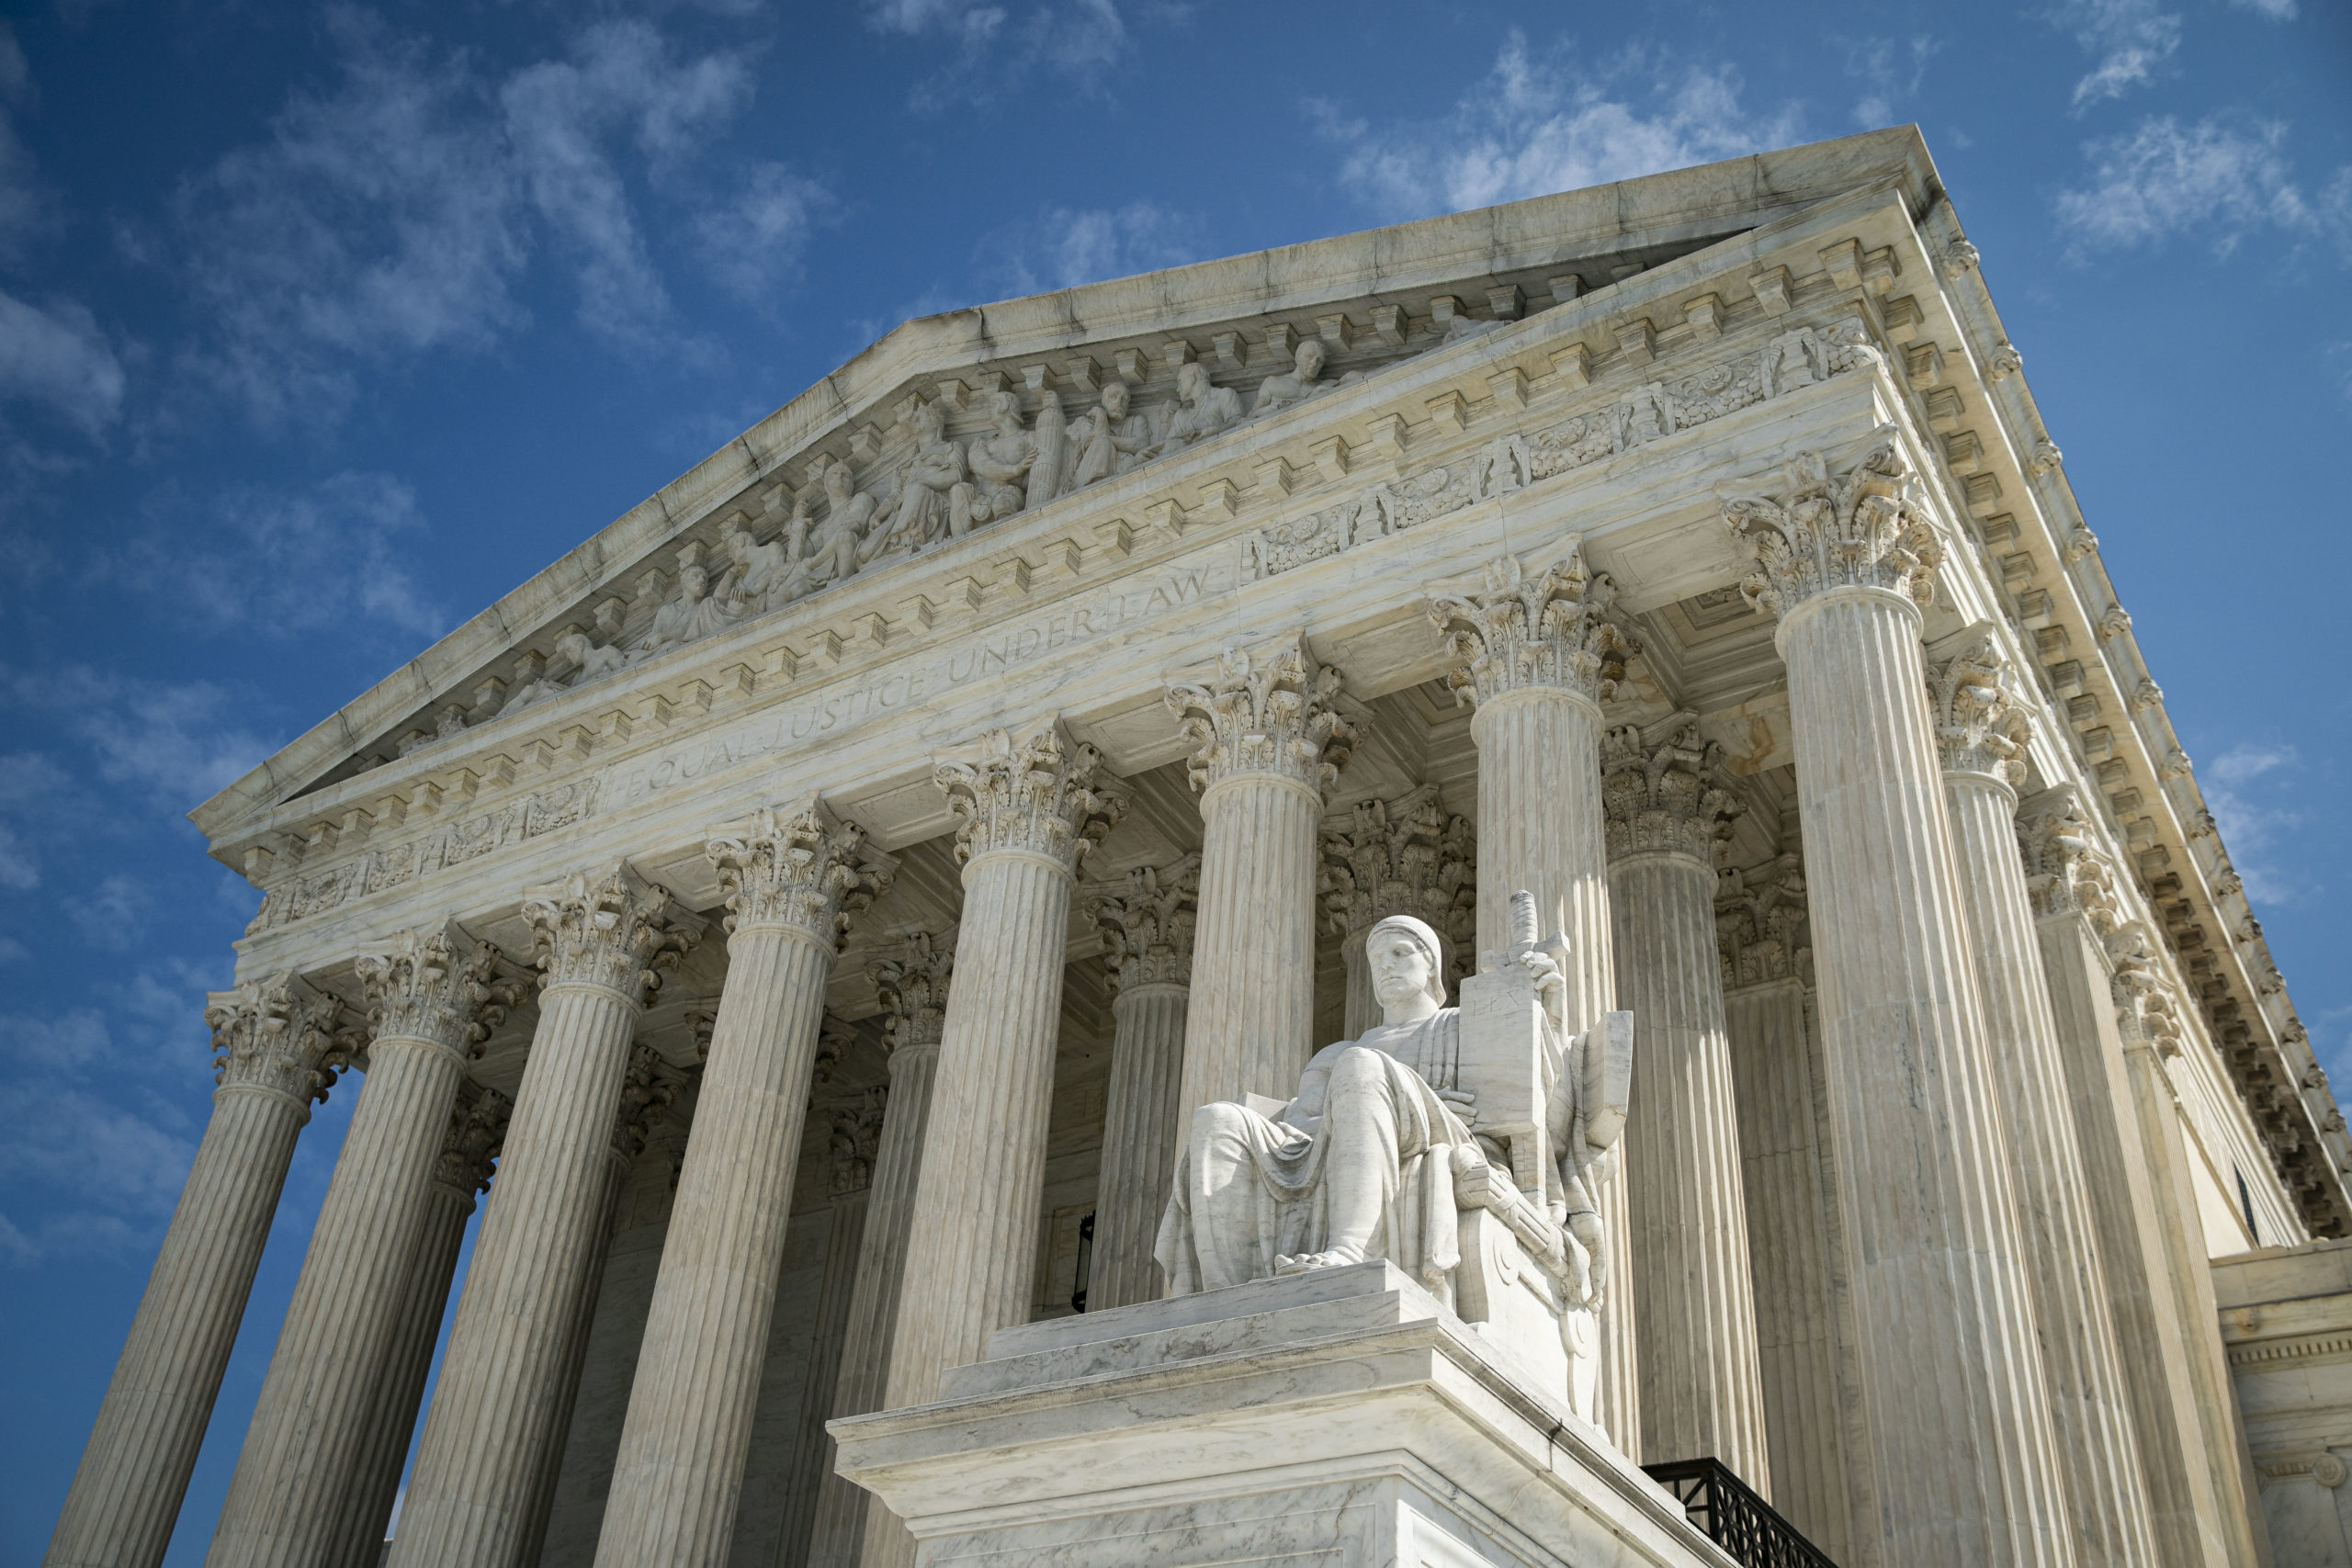 The Supreme Court is pictured on Sept. 28, 2020. (Al Drago/Getty Images)